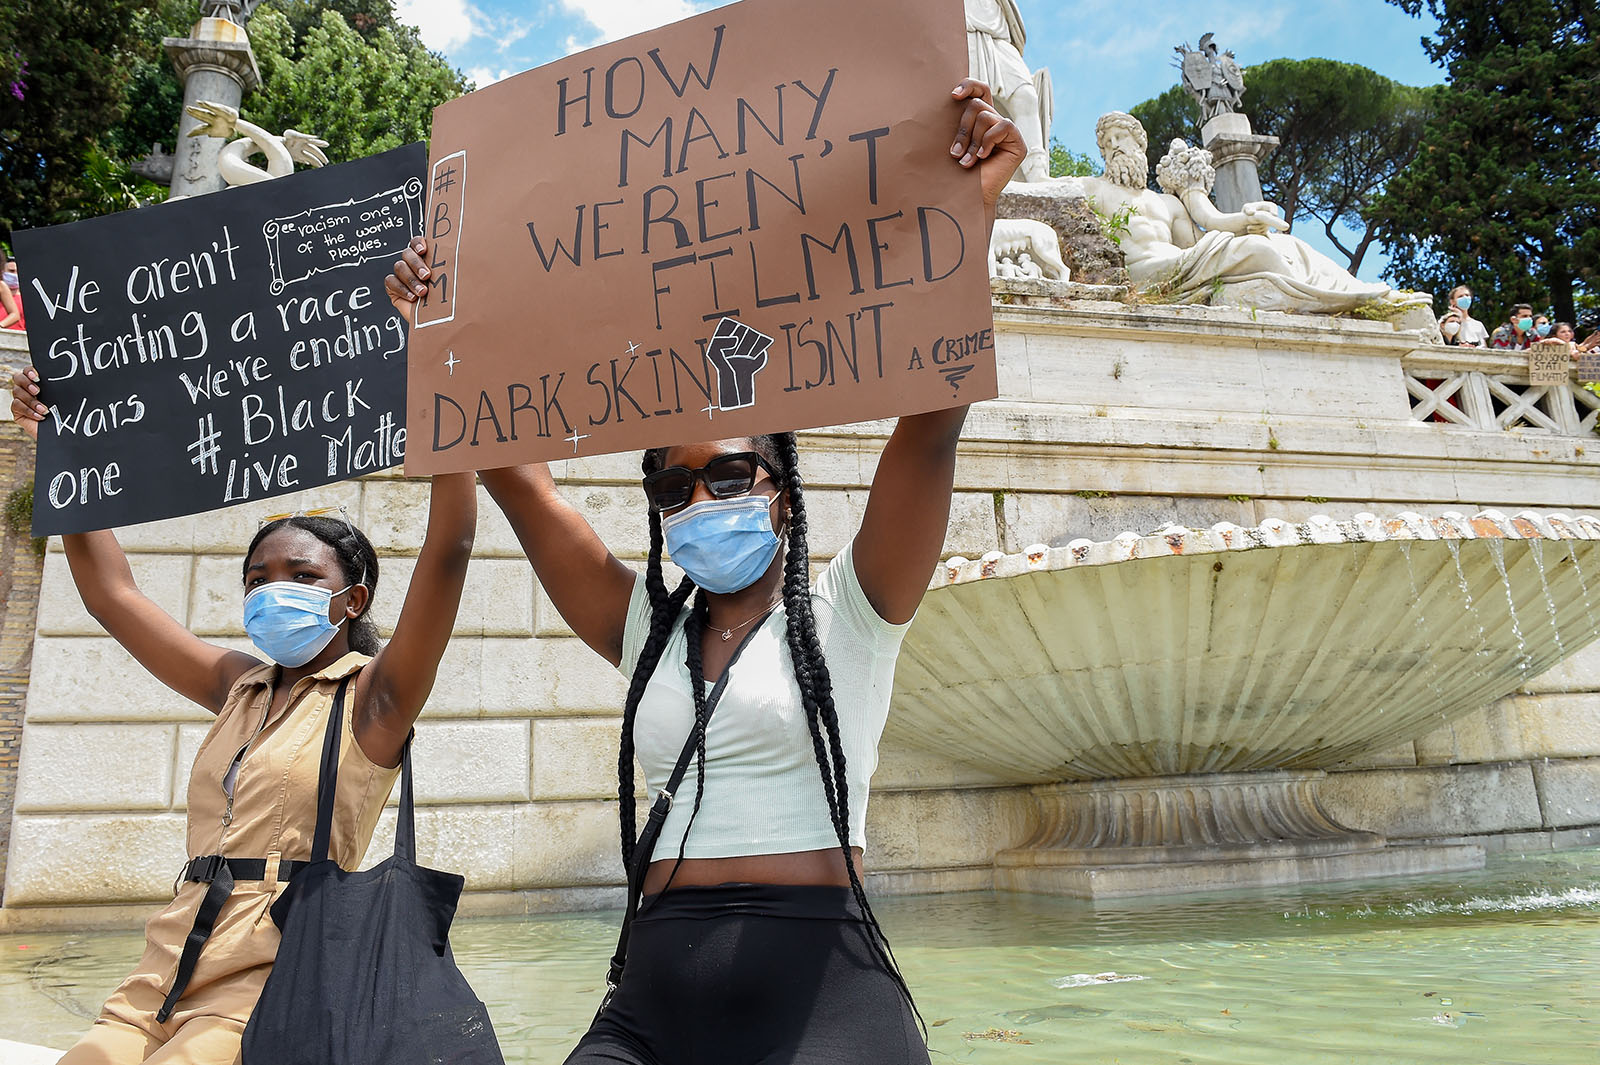 Yessir! Europe's Streets Are Jammed With Black Lives Matter Protests Too!